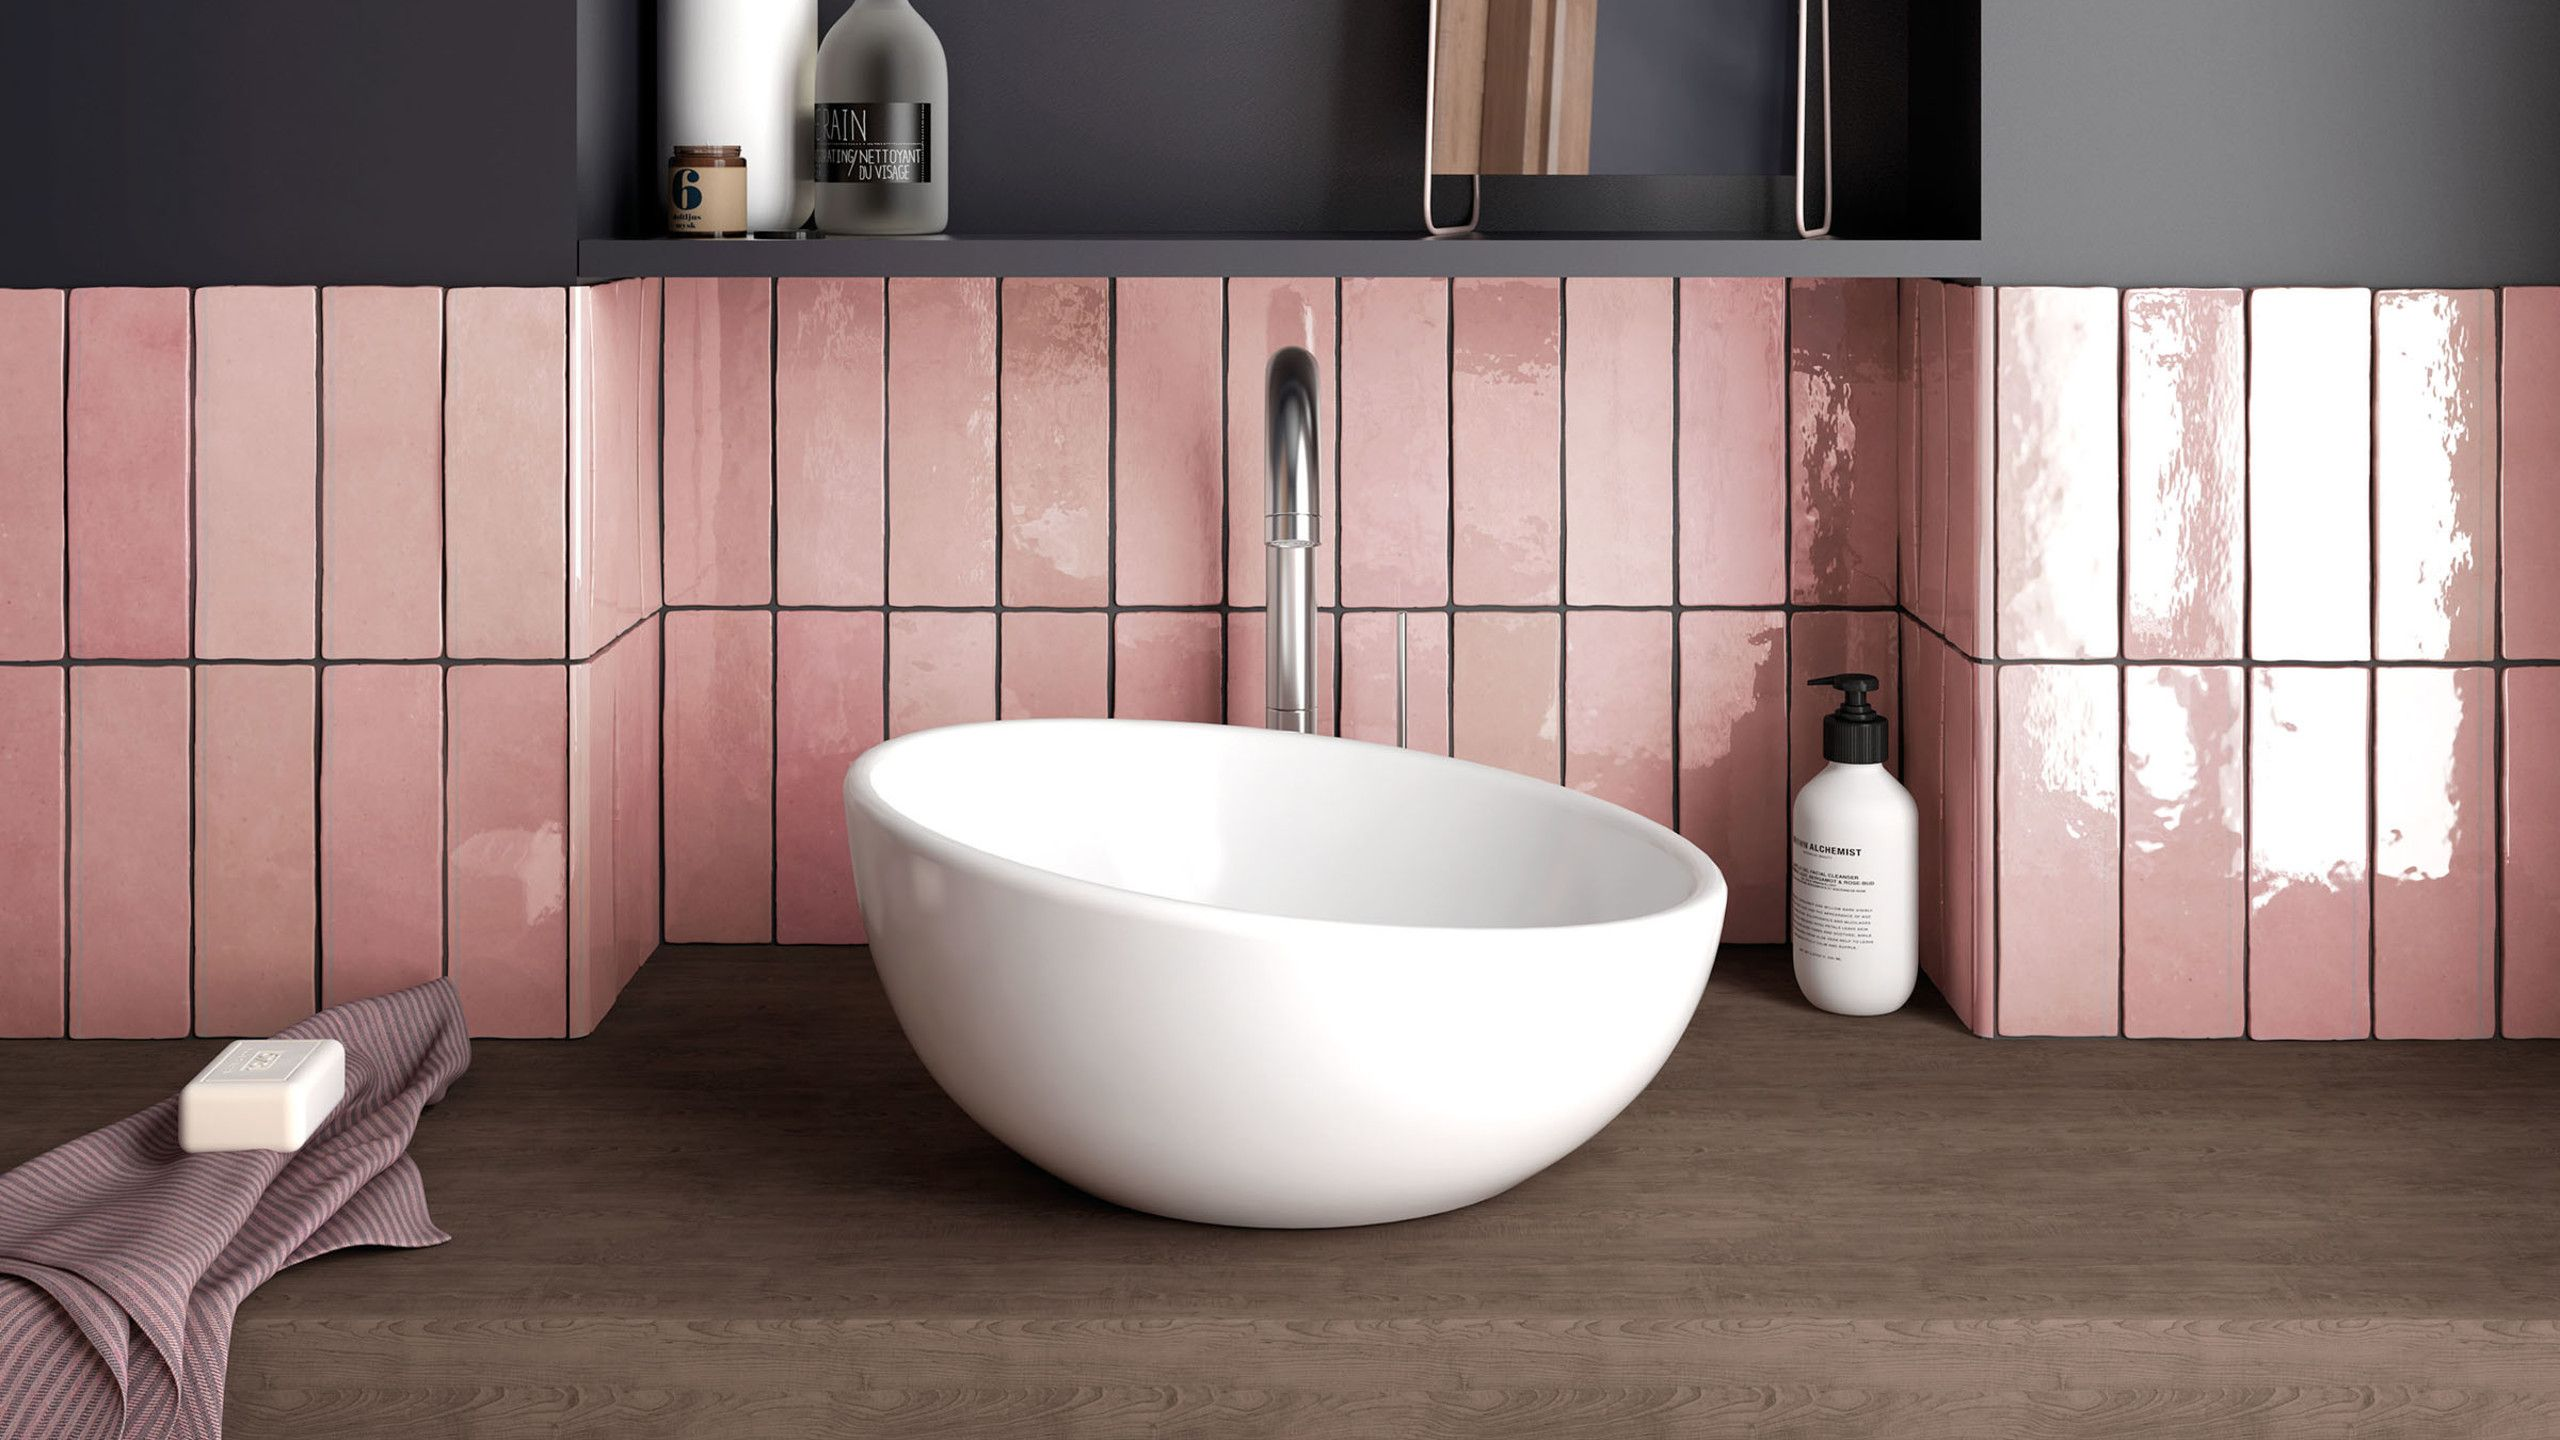 Cloe 2 5 X 8 Wall Tile In Pink Wall Tiles Bathroom Renovation Cost Colorful Interior Design